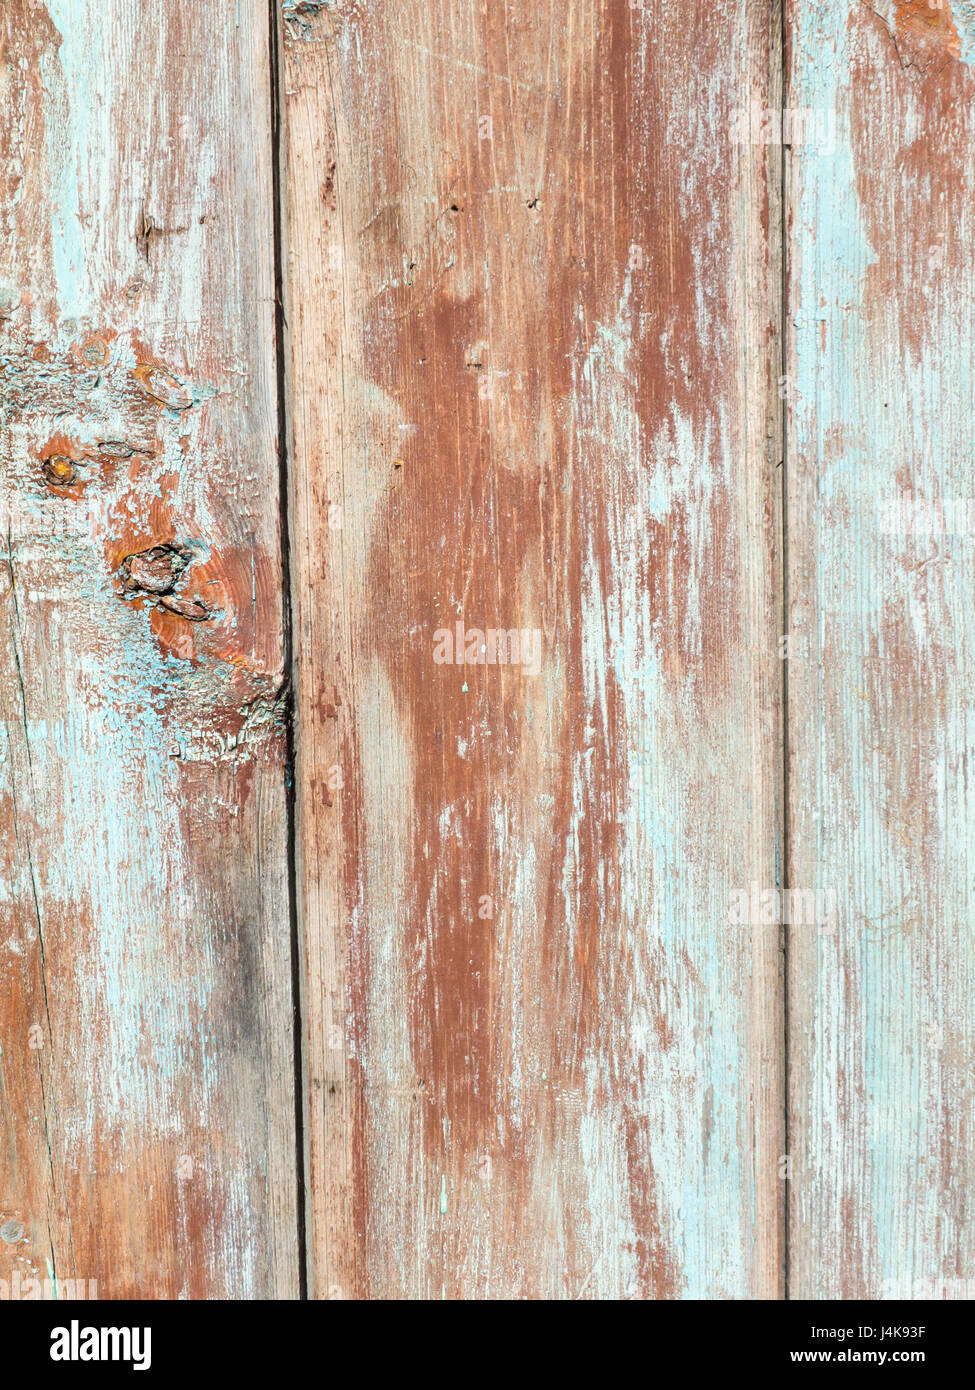 Wooden brown and blue painted planks vertical background - Stock Image